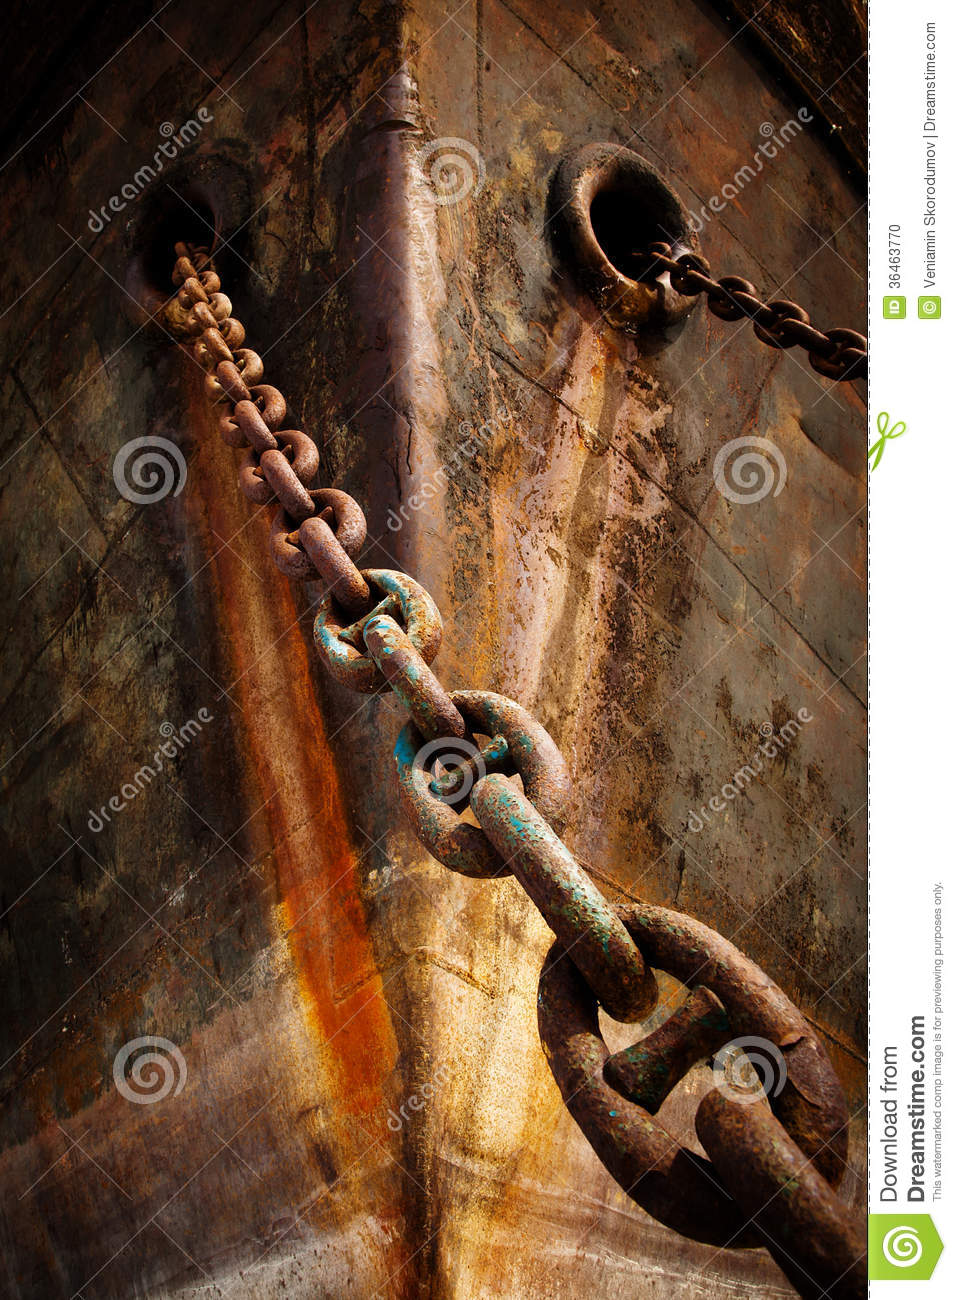 Prow Old Ship With Anchor Chain Stock Photo Image 36463770